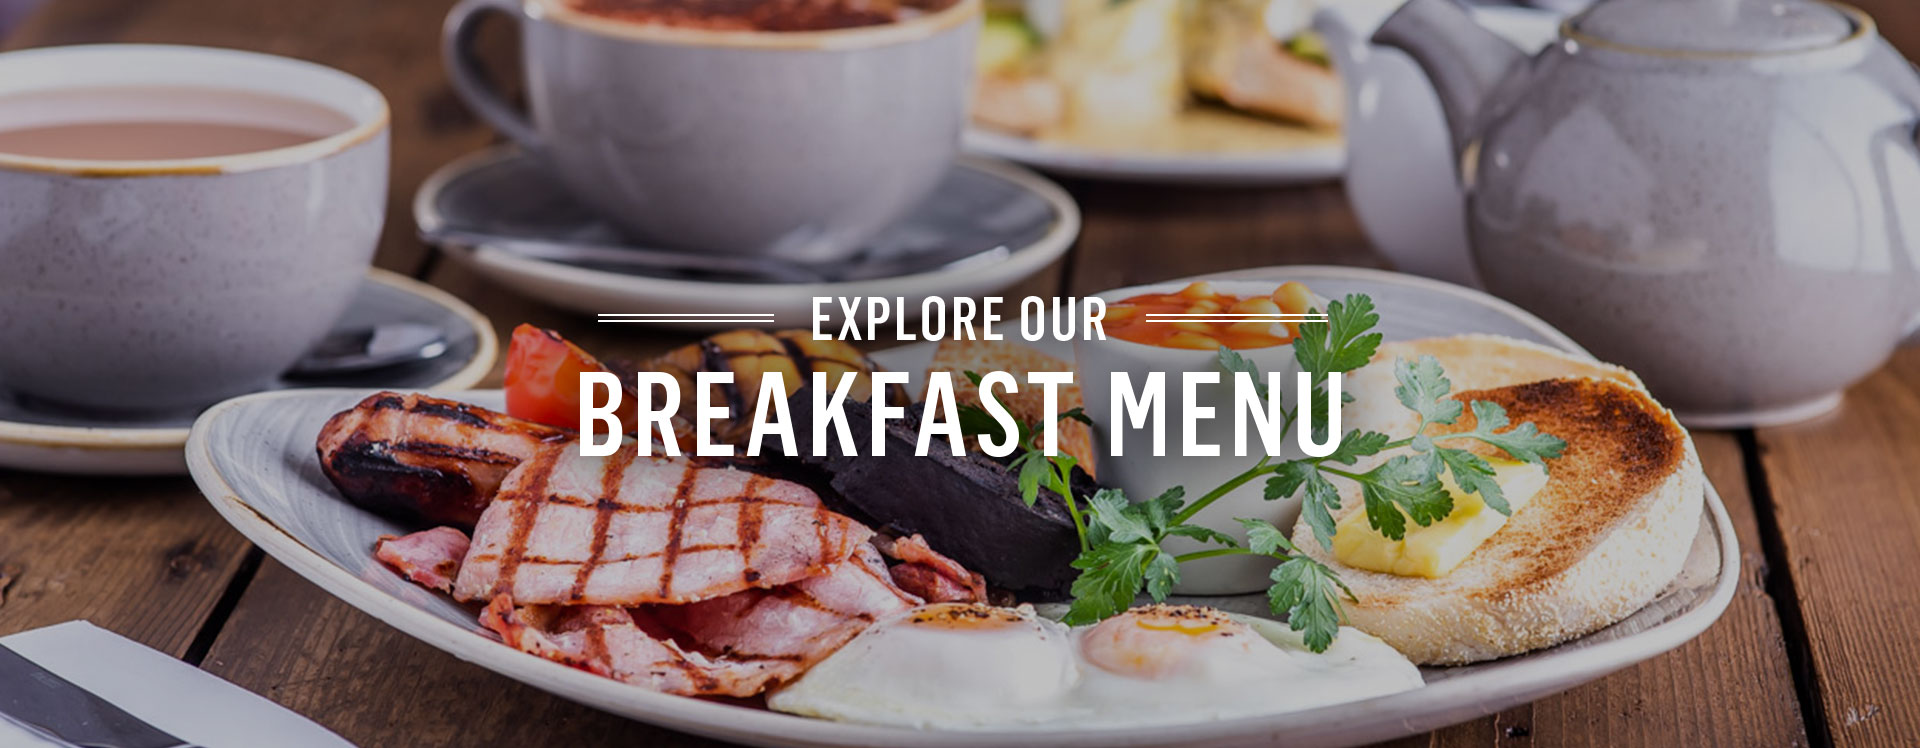 Breakfast at The Philharmonic Dining Rooms - Book a table